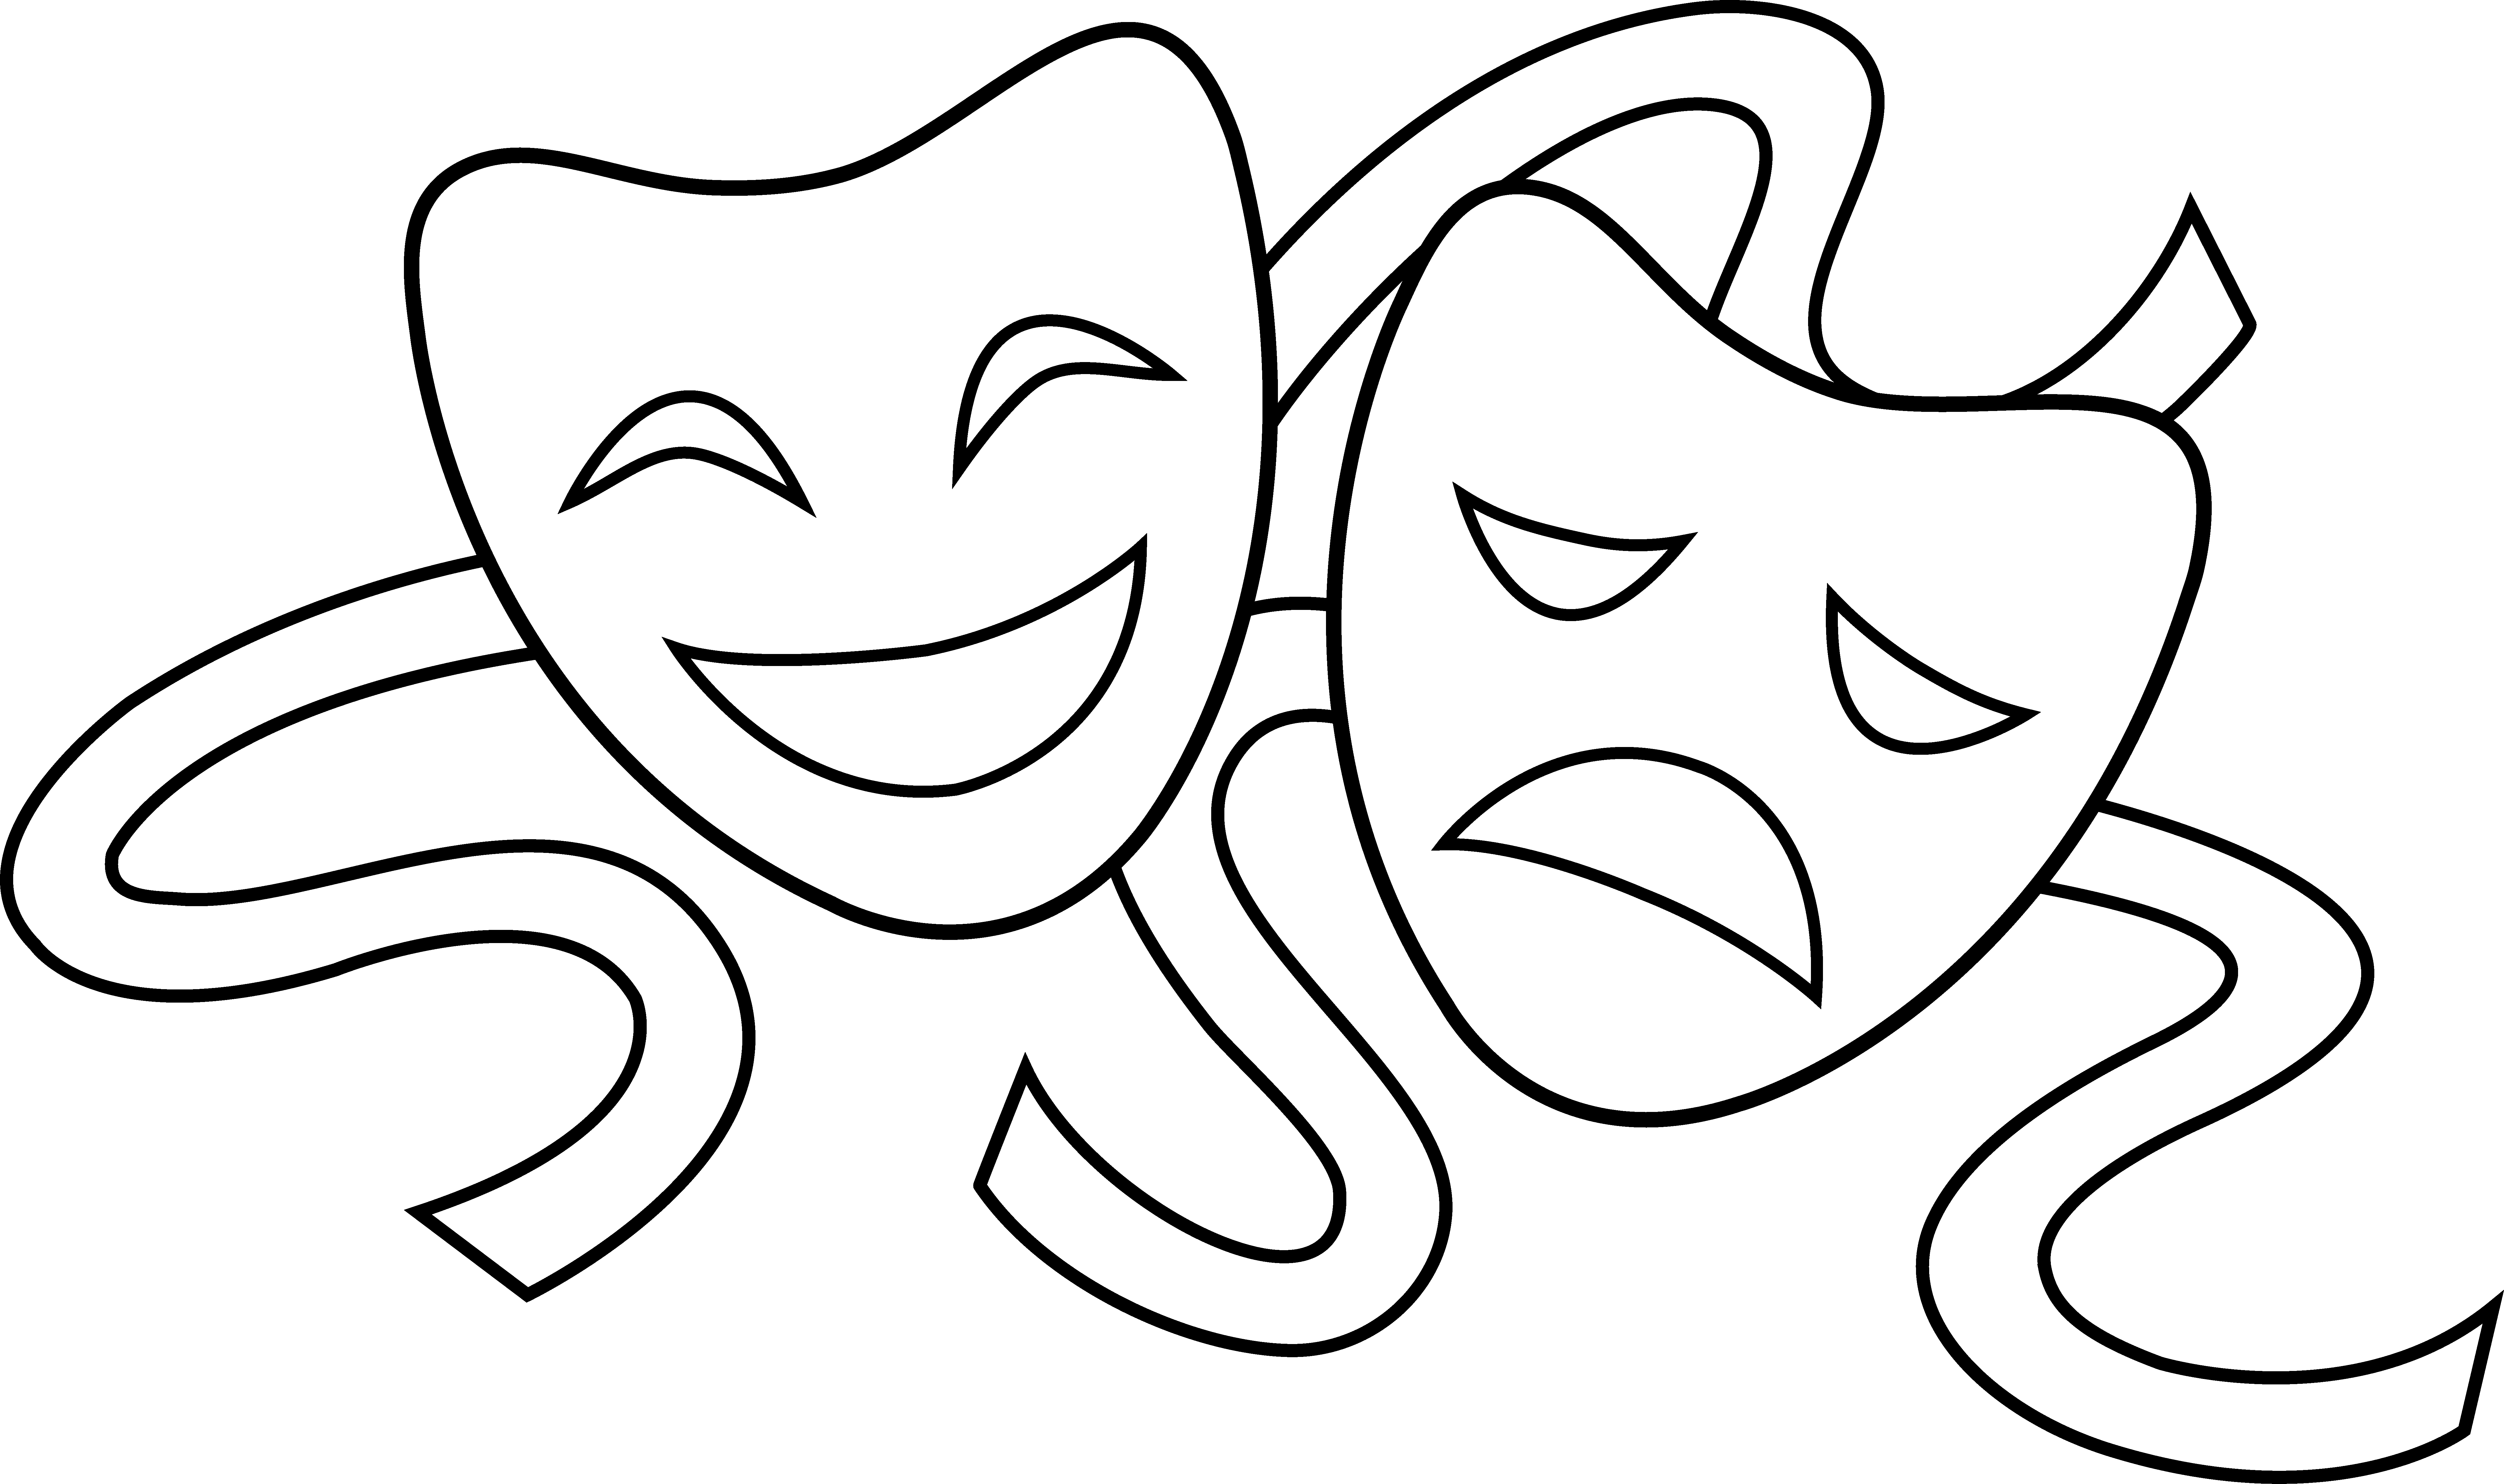 Star clipart black and white drama vector library Theater Masks Outline | Signs | Pinterest | Outlines, Masking and ... vector library